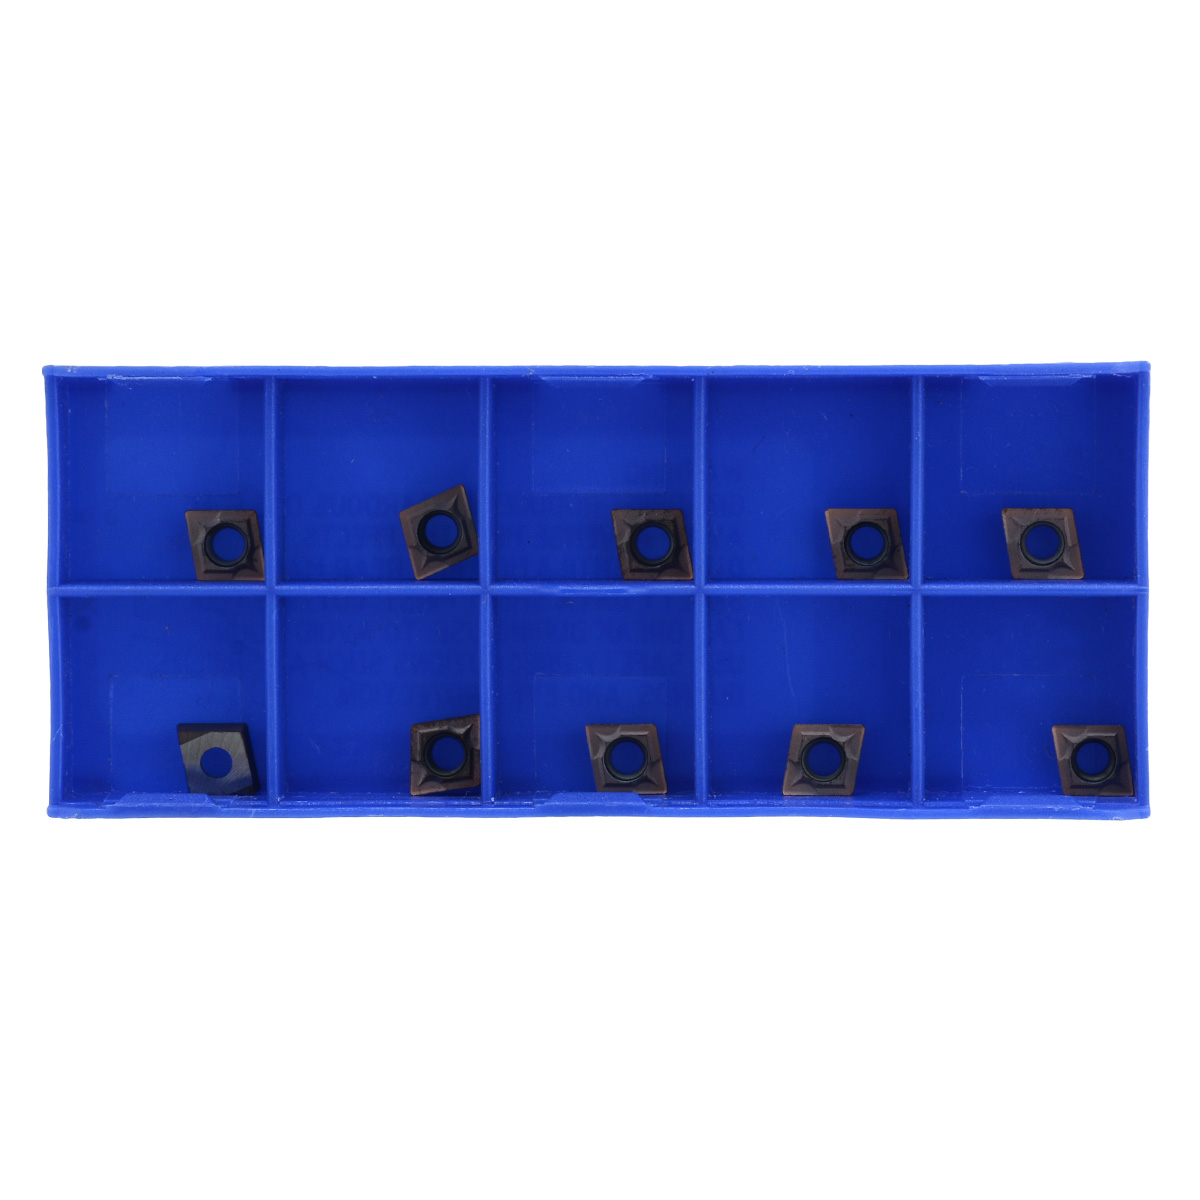 10pcs CCMT060204 VP15TF Carbide Inserts Durable Blades + 1pc SCLCR1212H06 Lathe Turning Tool Holder + Wrench for Manufacturing